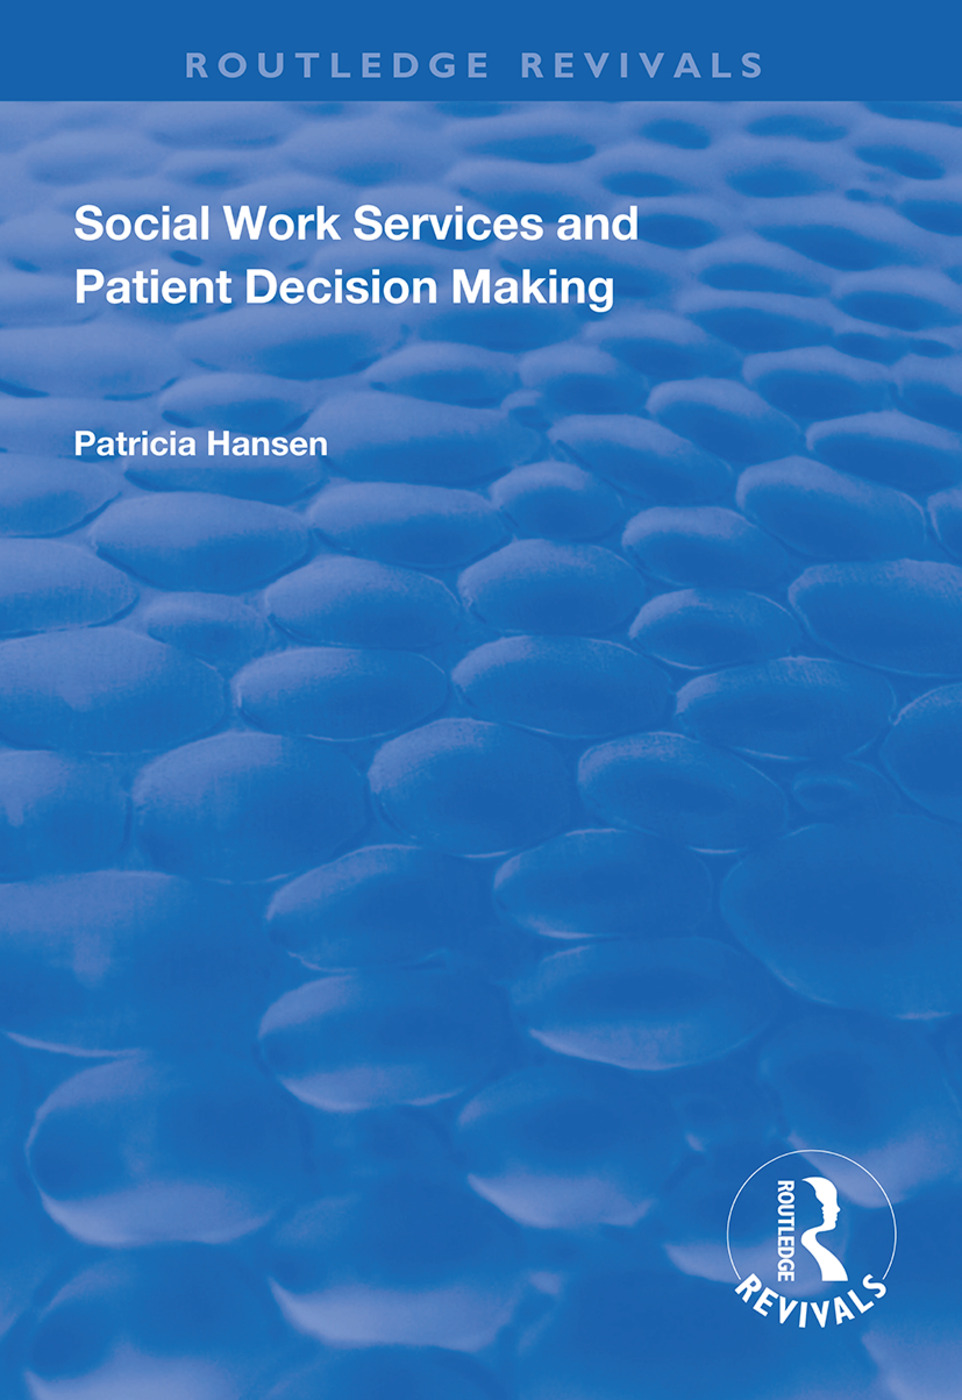 Social Work Services and Patient Decision Making